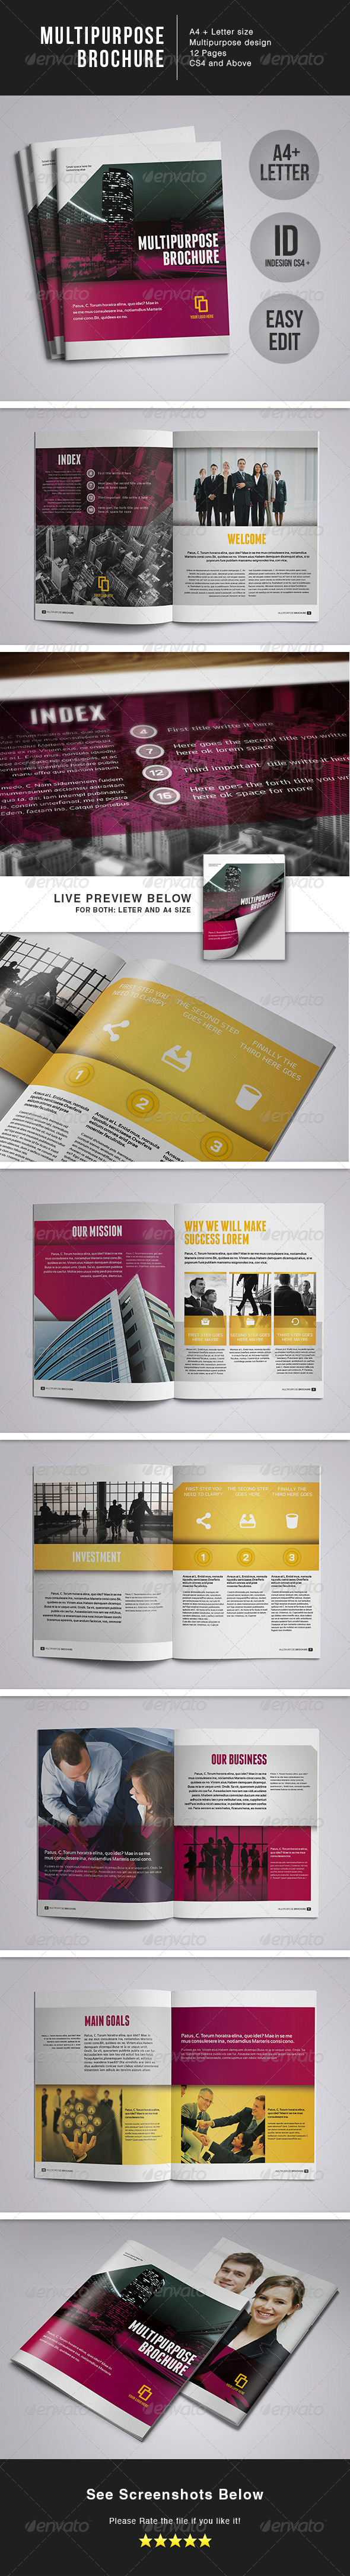 Multipurpose Brochure - A4+Letter - Corporate Brochures